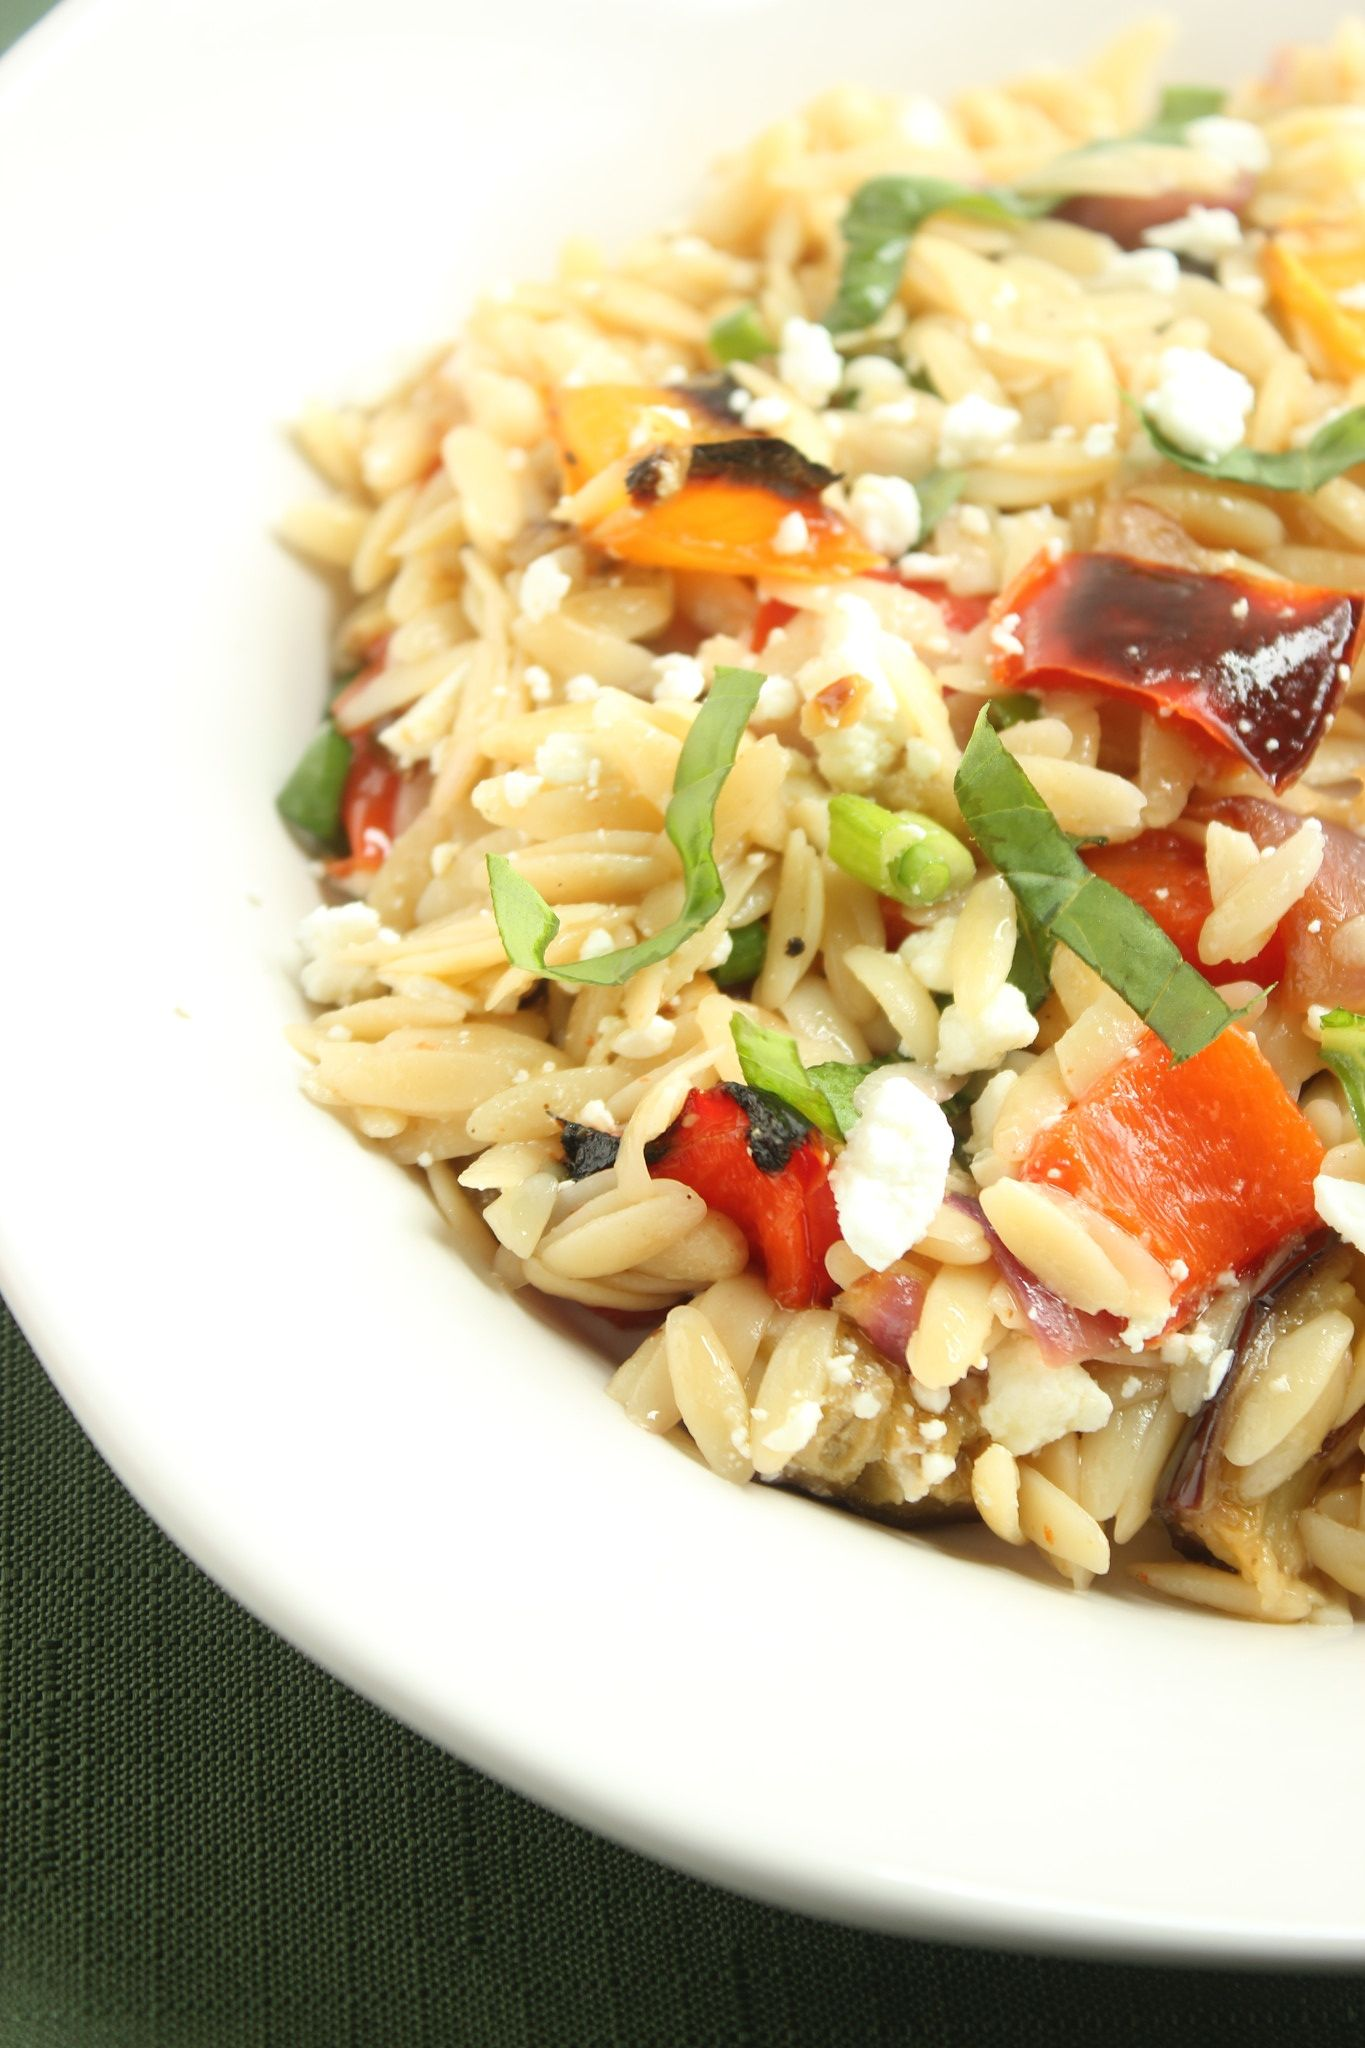 Ina garten s orzo with roasted vegetables one of my Ina garten summer pasta